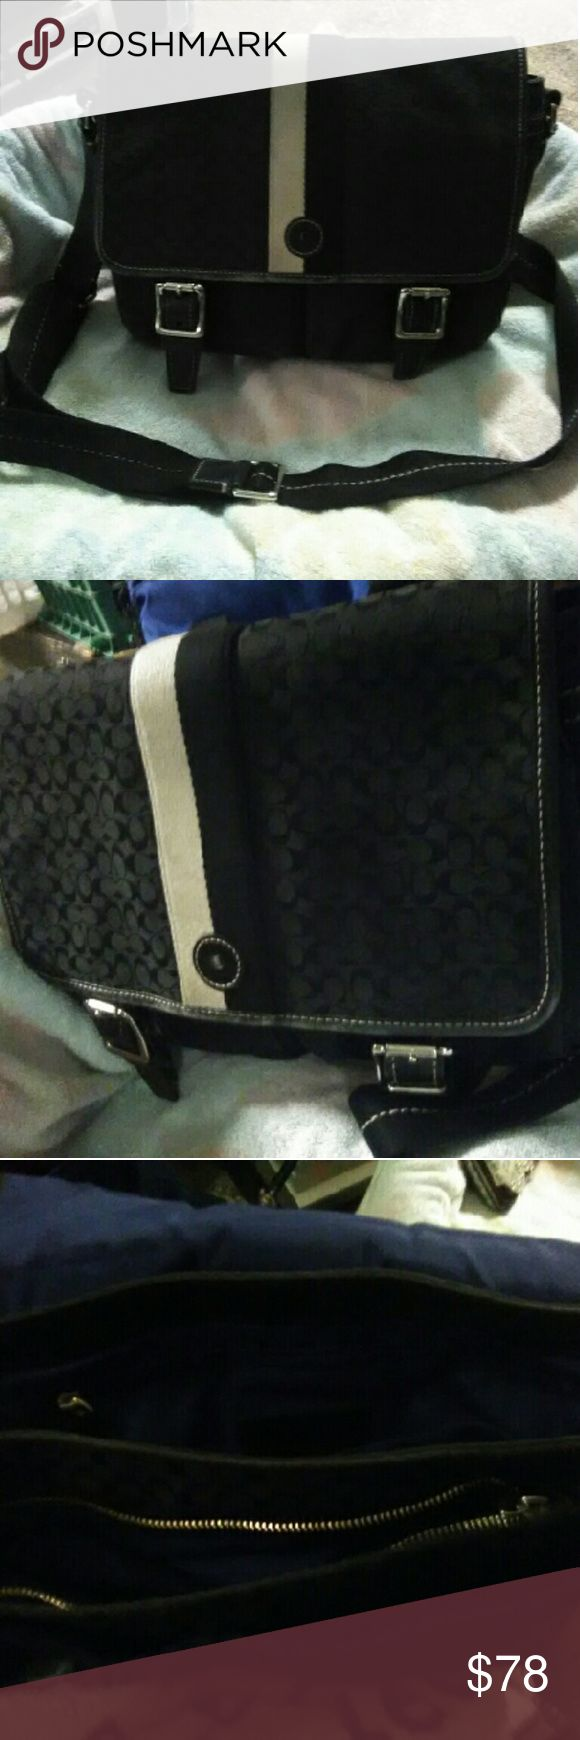 Awesome Coach messenger bag Awesome COACH messenger bag with tons of pockets and compartments! Great size very practical and looks amazing!! Like new condition. Coach Bags Hobos